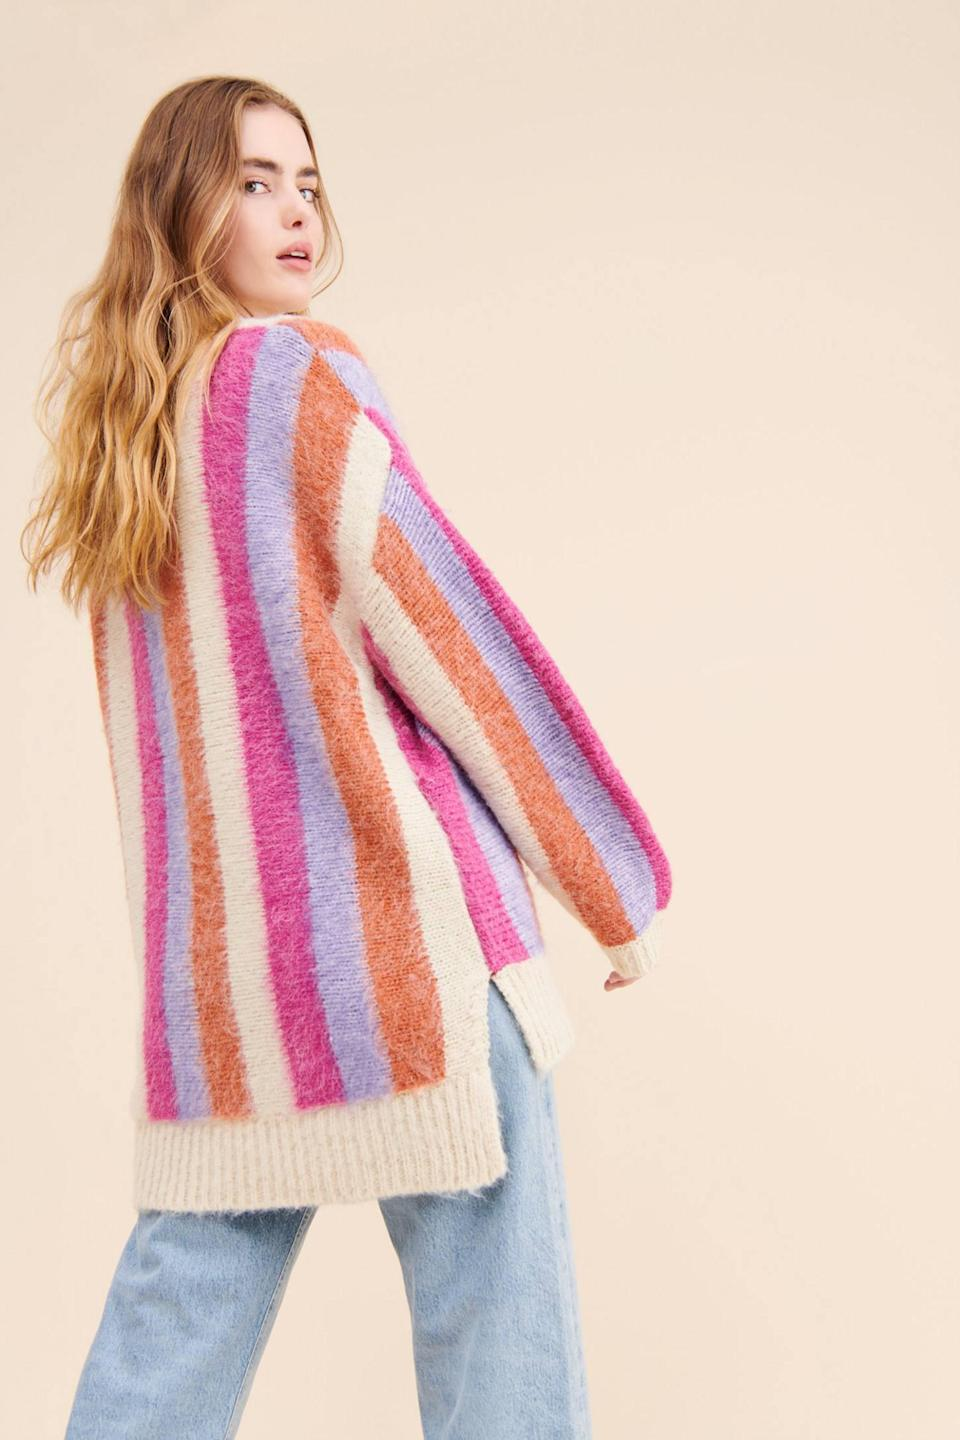 """<br><br><strong>Moon River Anthropologie</strong> Striped High Low Sweater, $, available at <a href=""""https://go.skimresources.com/?id=30283X879131&url=https%3A%2F%2Fwww.anthropologie.com%2Fshop%2Fmoon-river-striped-high-low-sweater"""" rel=""""nofollow noopener"""" target=""""_blank"""" data-ylk=""""slk:Anthropologie"""" class=""""link rapid-noclick-resp"""">Anthropologie</a>"""